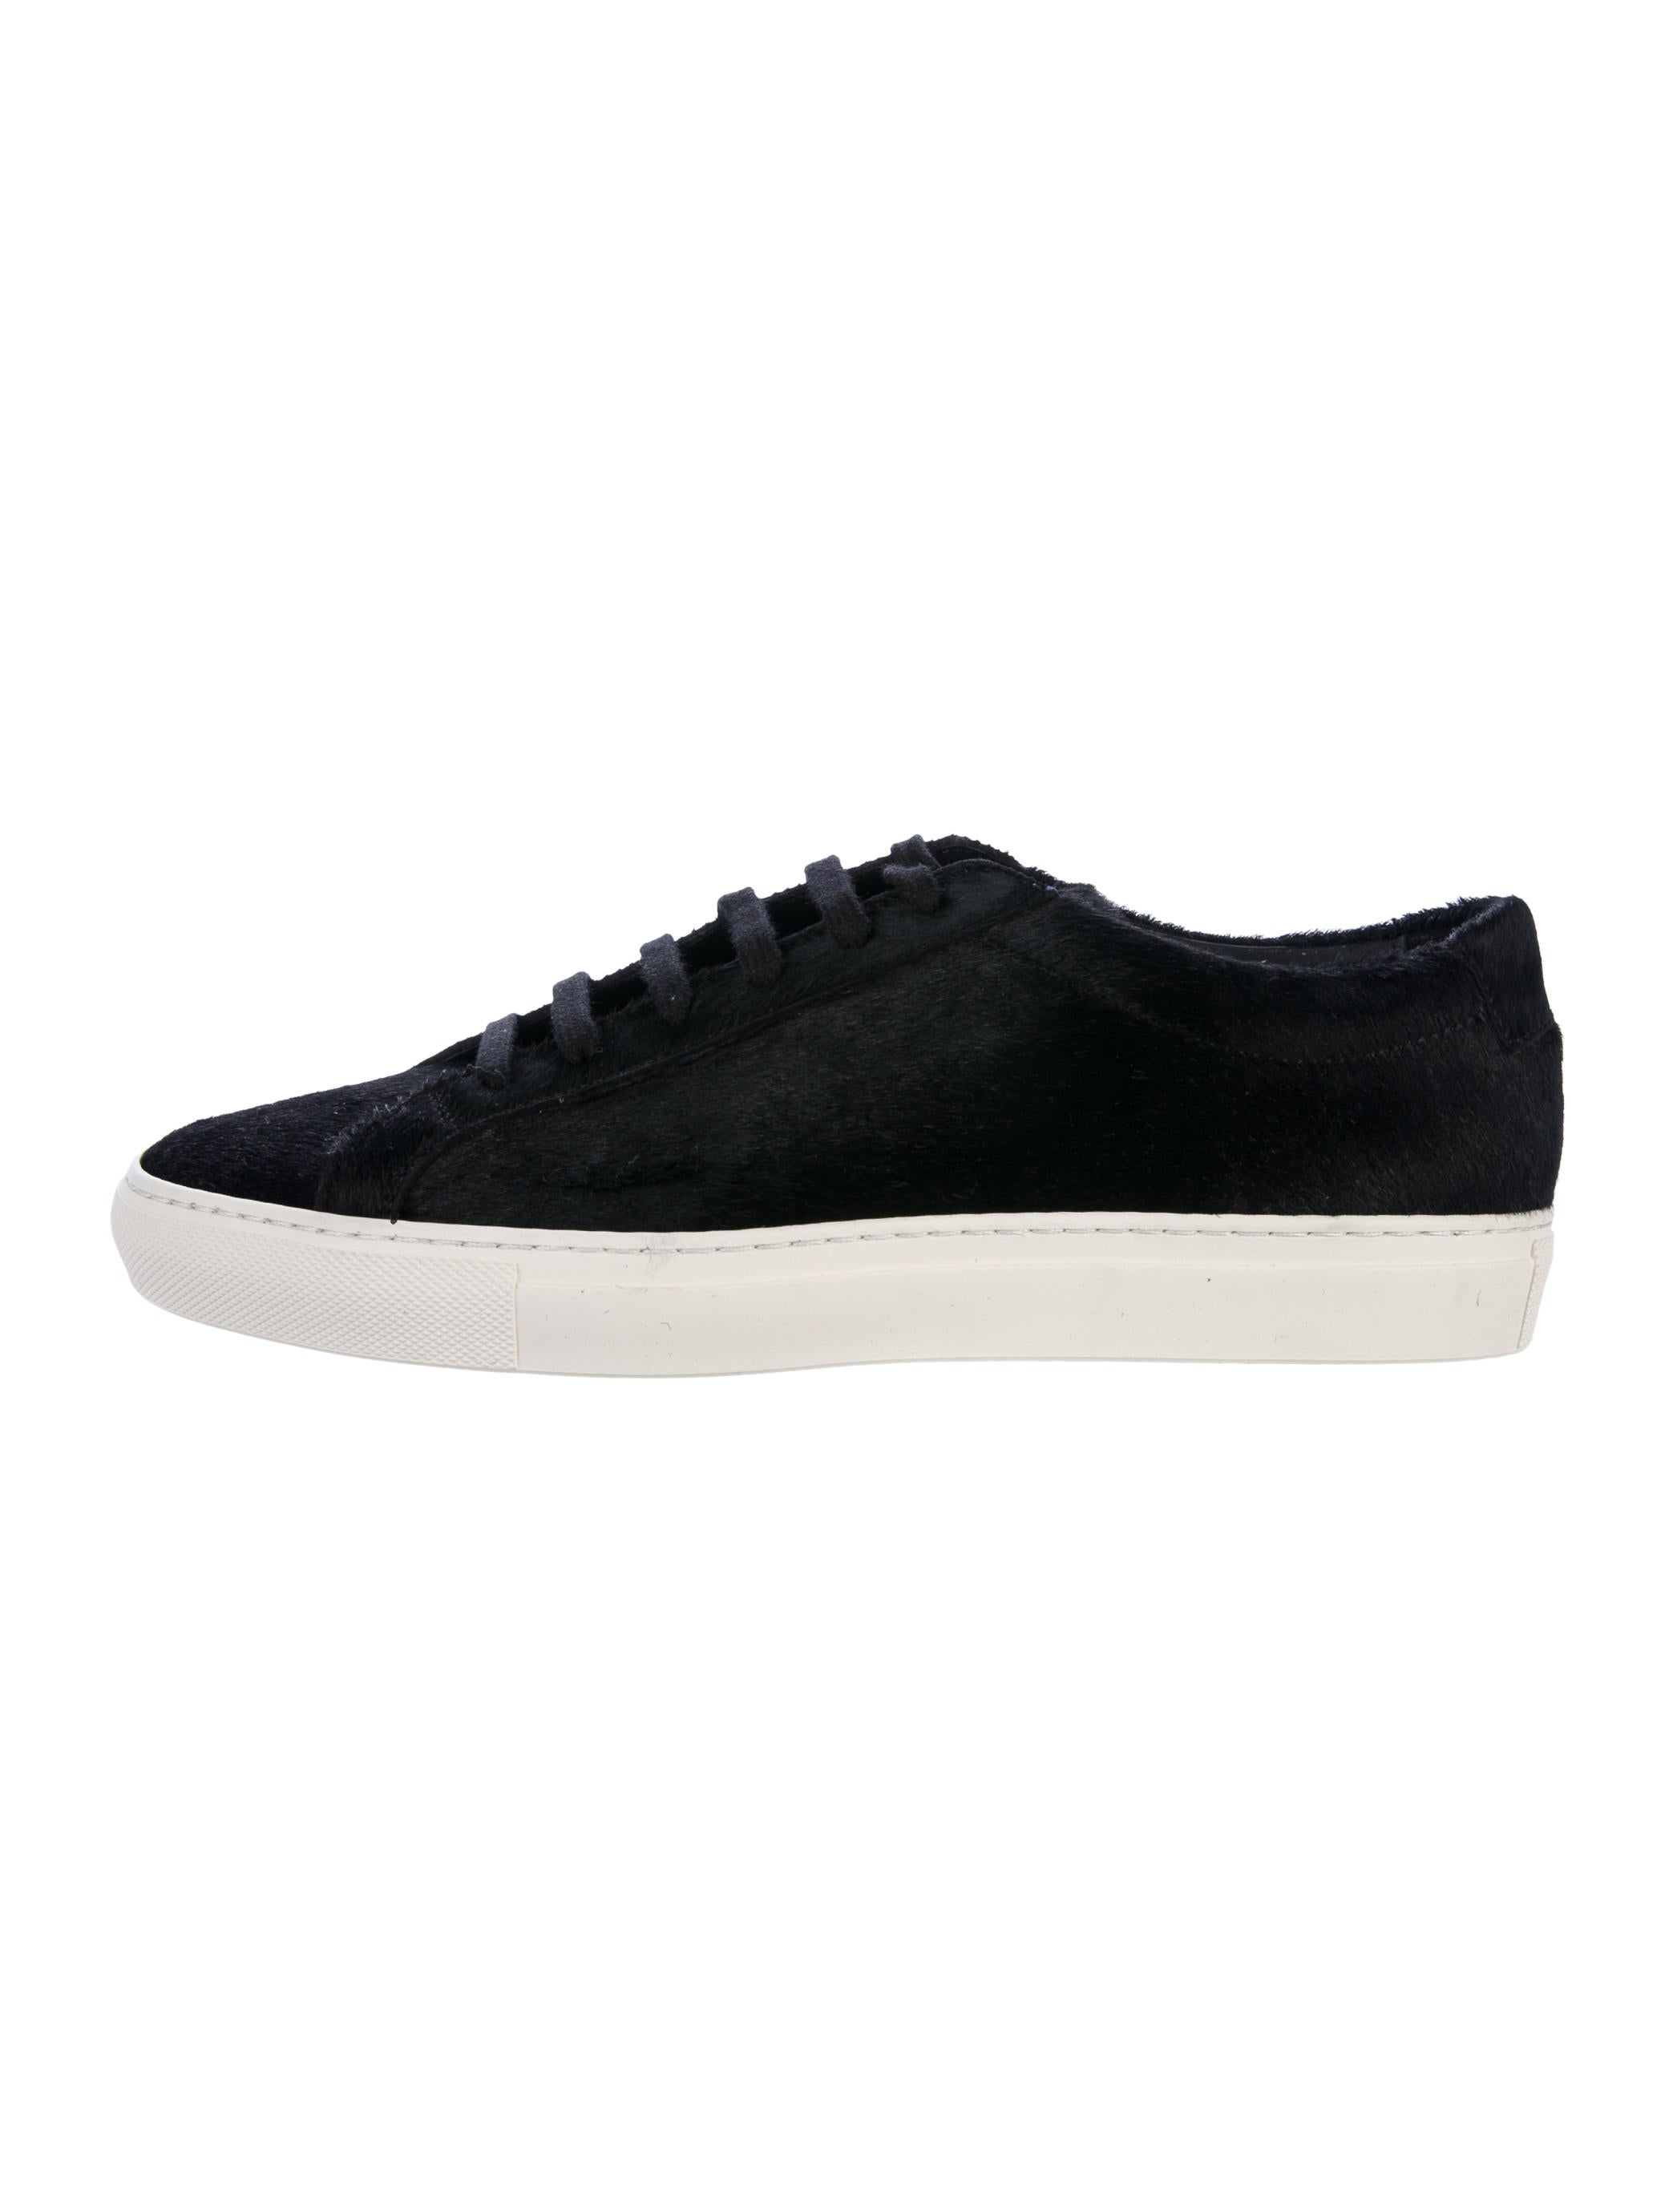 Woman by Common Projects Ponyhair Low-Top Sneakers prices cheap online mAECEEb